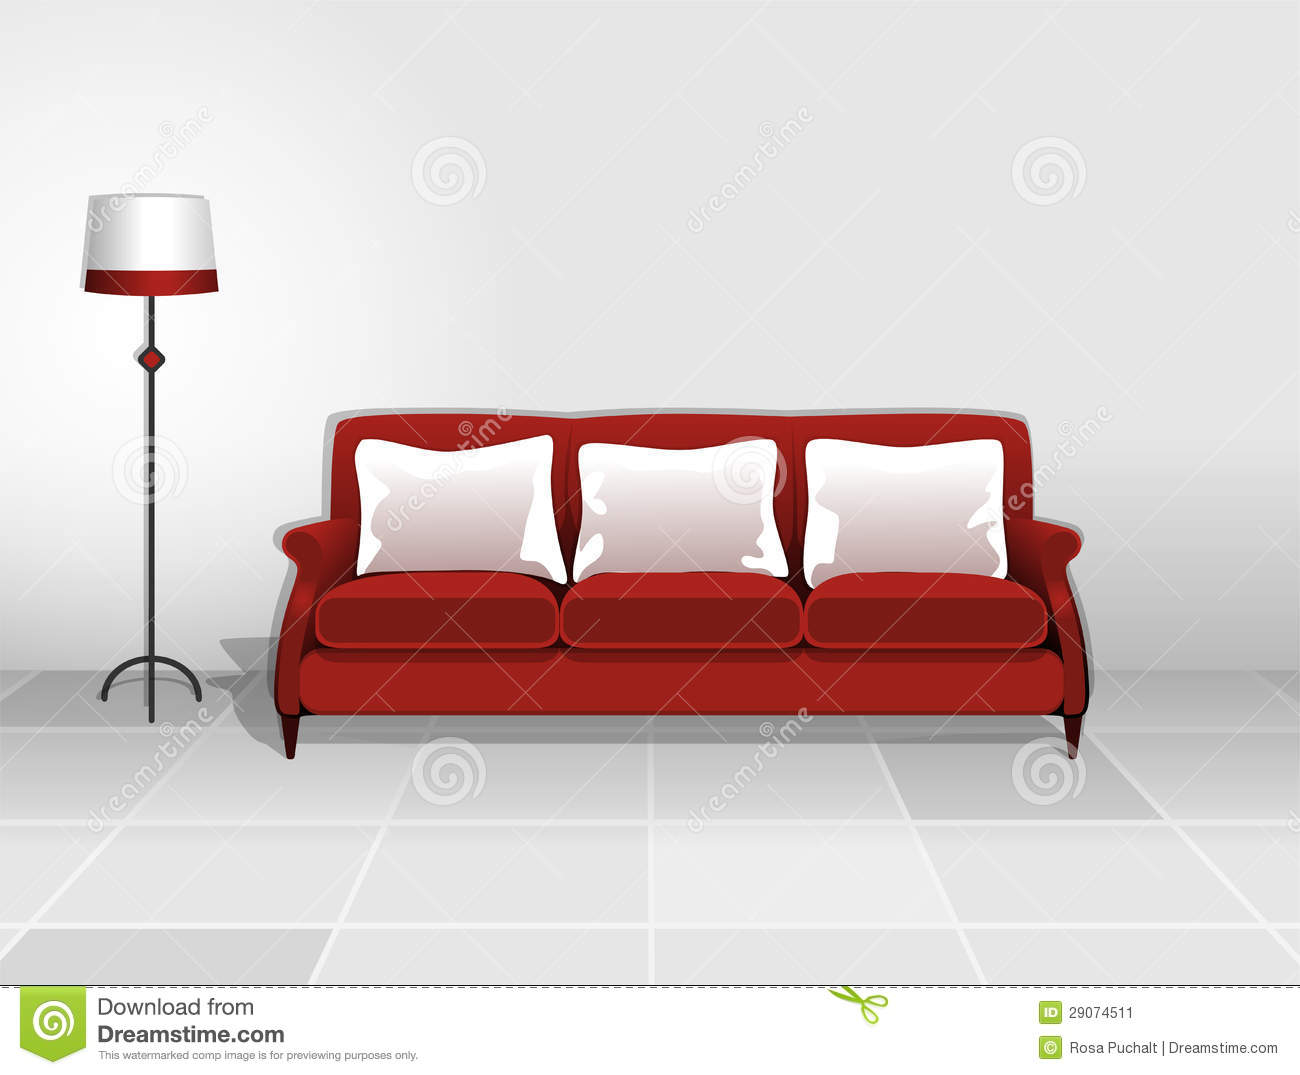 Superior Red Sofa With White Cushions Stock Illustration   Illustration Of Decor,  Vector: 29074511